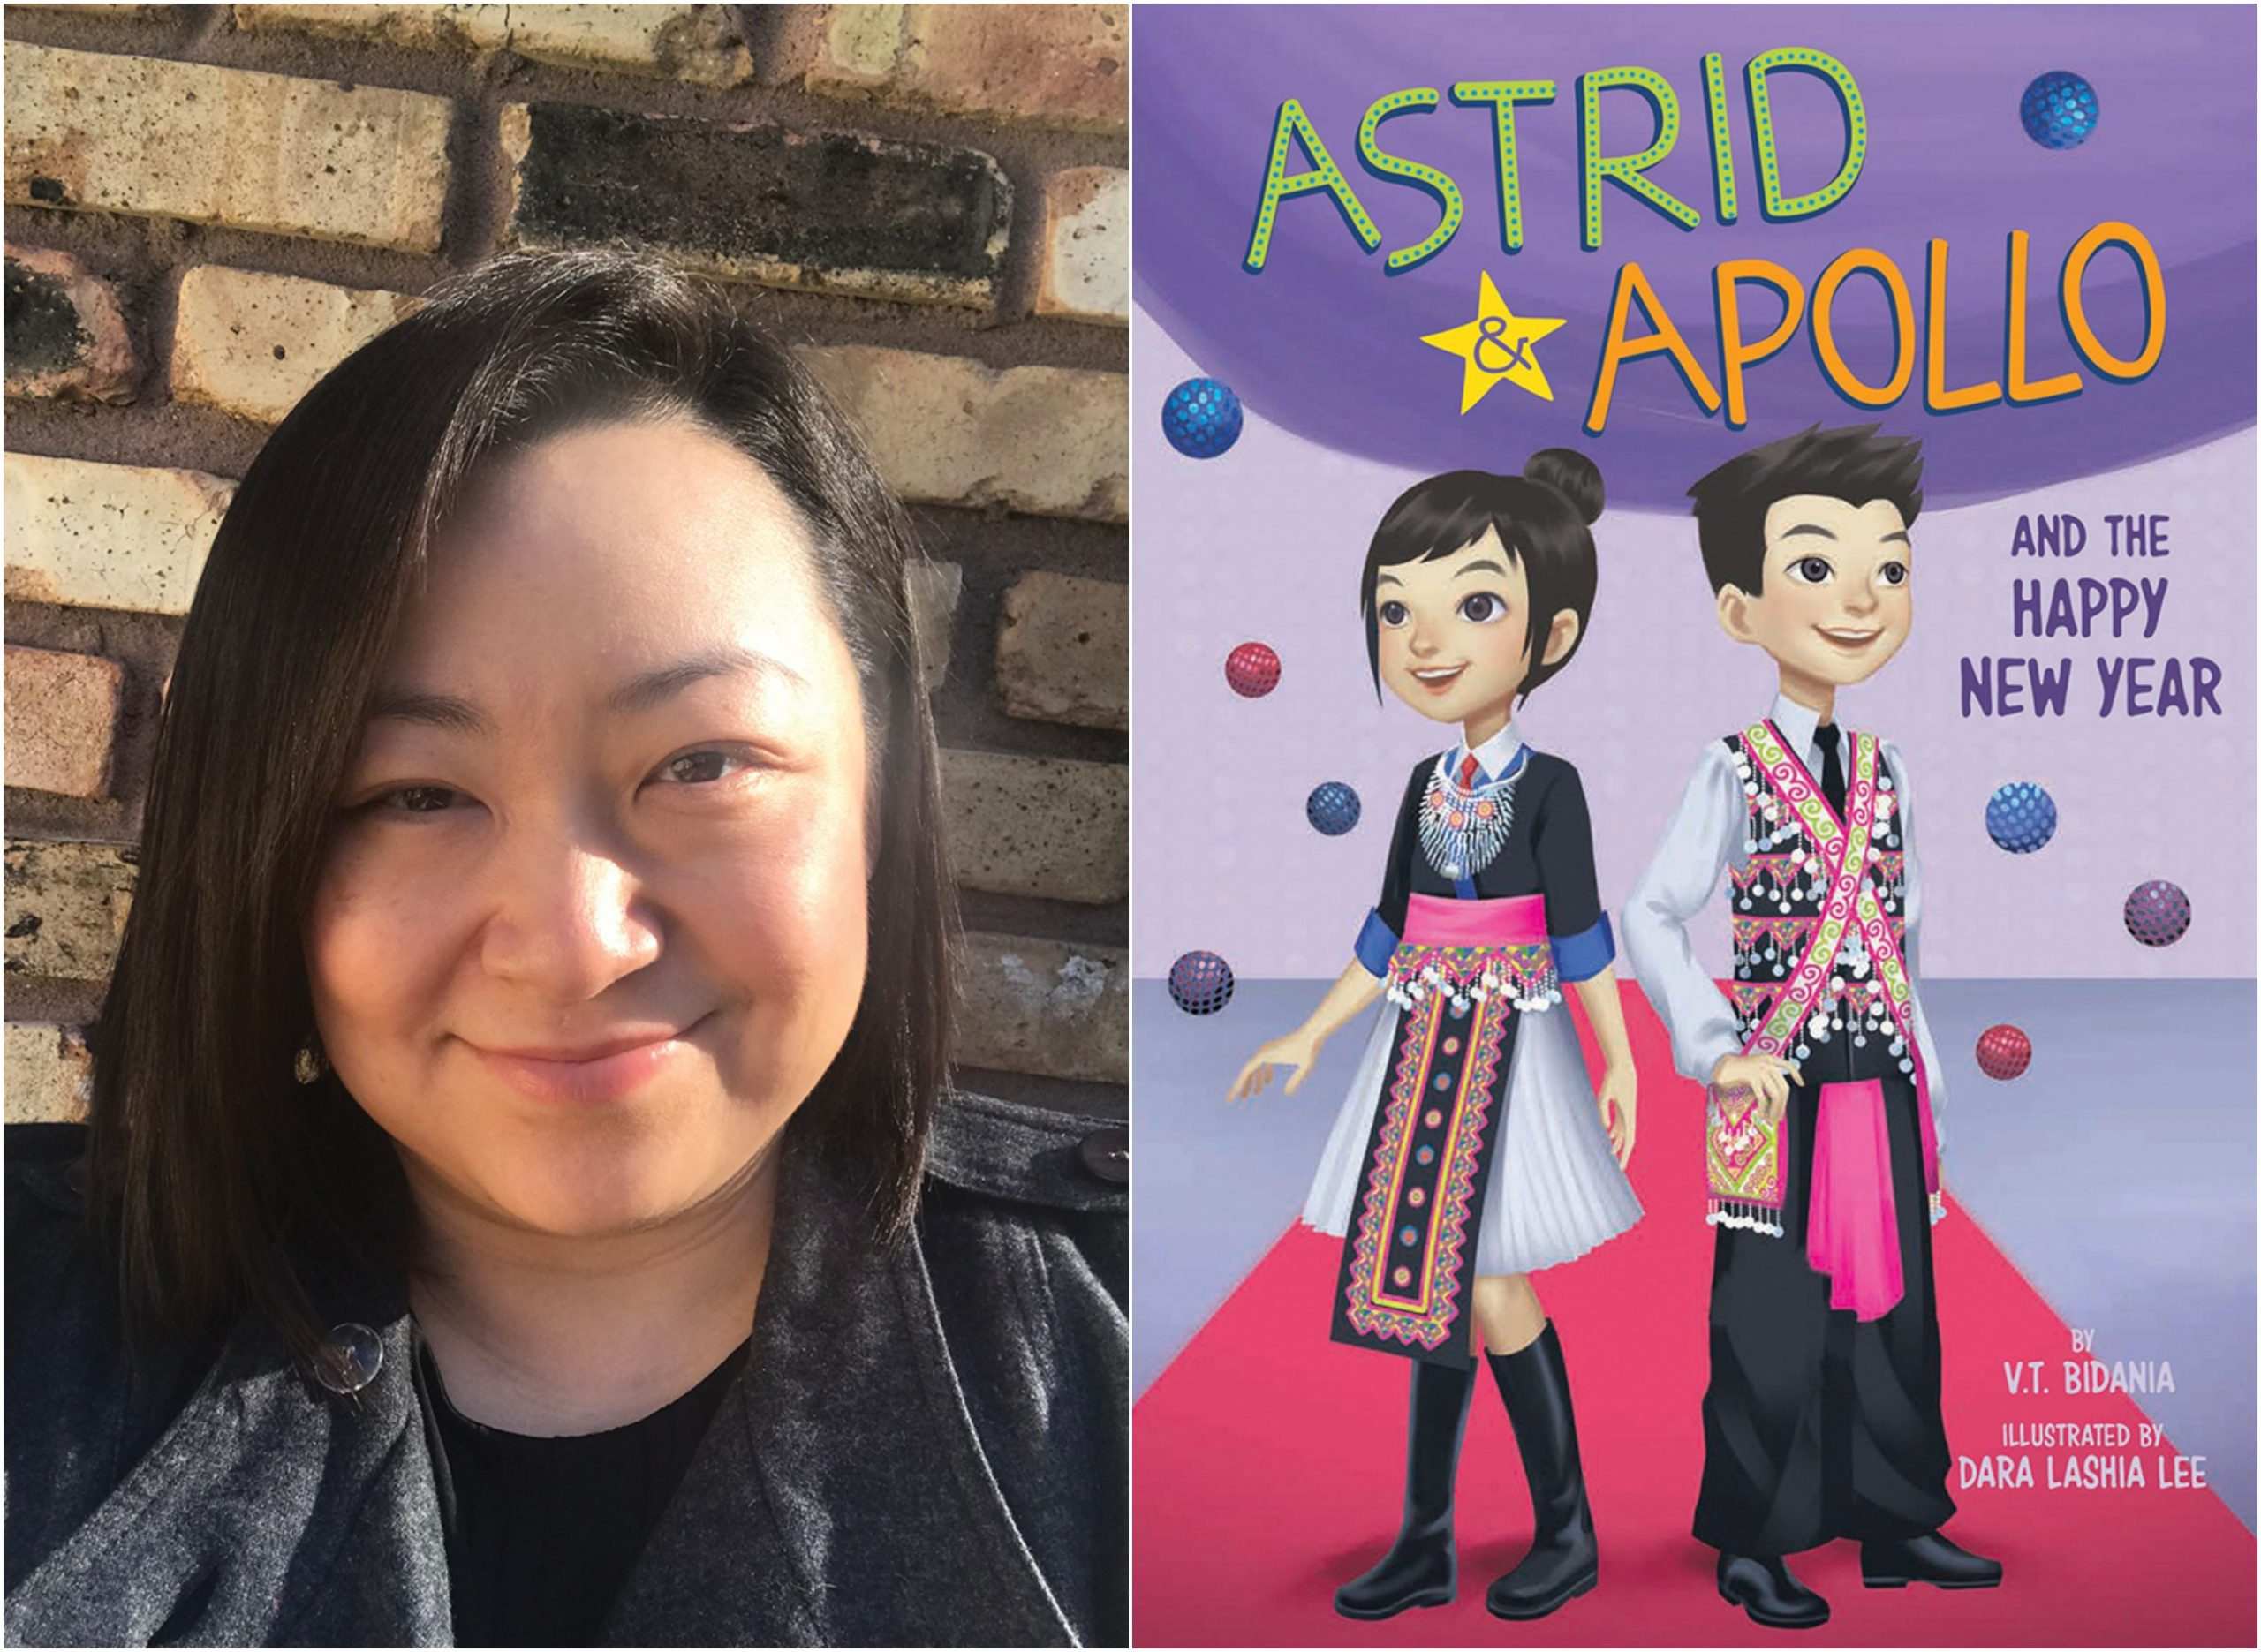 "Author Vong ""V.T."" Bidania's children's book ""Astrid & Apollo and the Happy New Year"" details a celebration at a RiverCentre-like stadium"